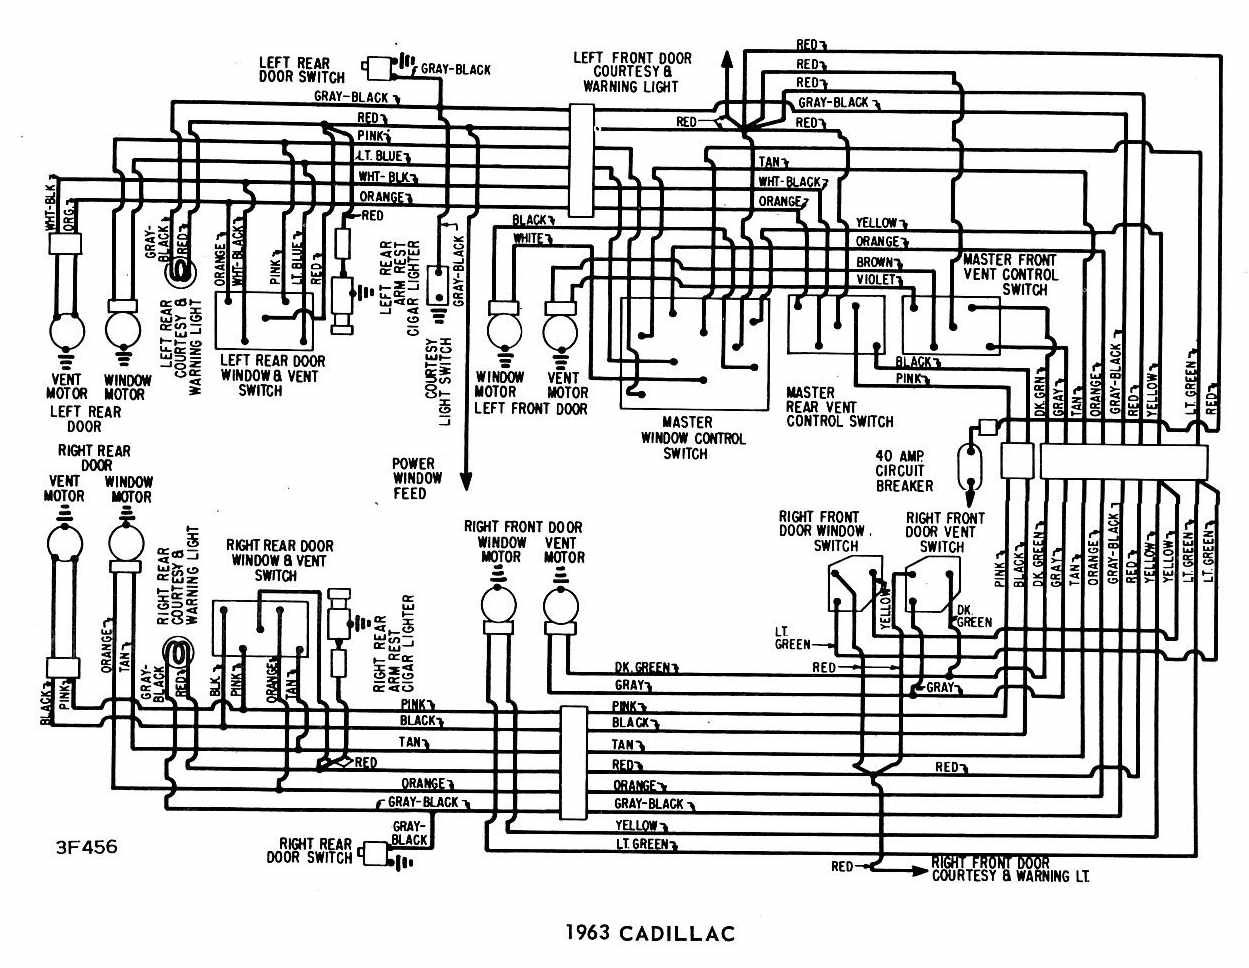 wiring diagram symbols automotive wiring diagram diagram, wire Electrical Wire Harness Connectors